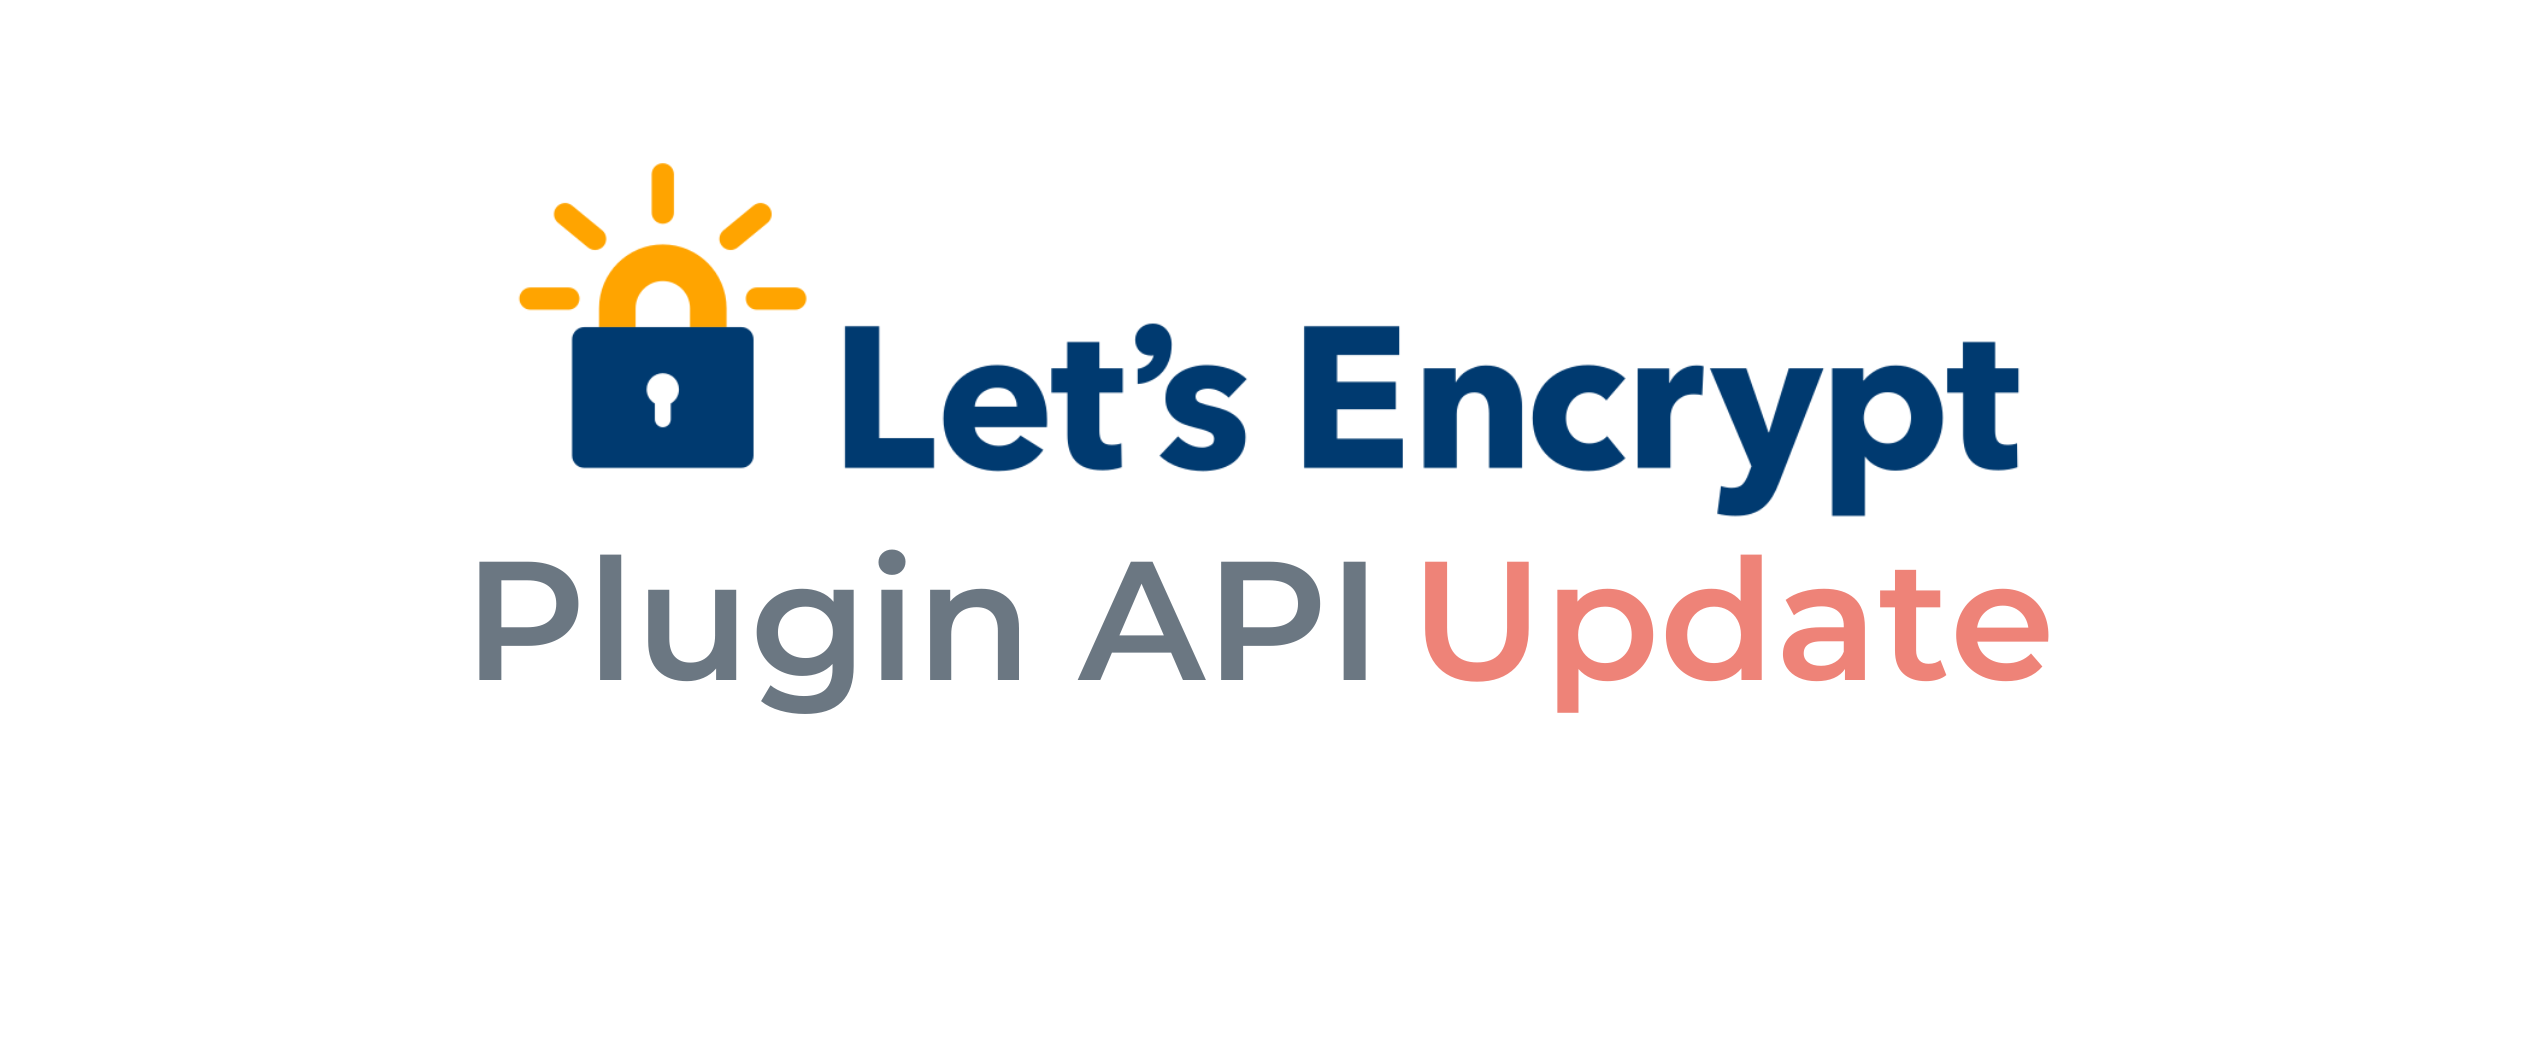 Let's Encrypt Plugin API Update